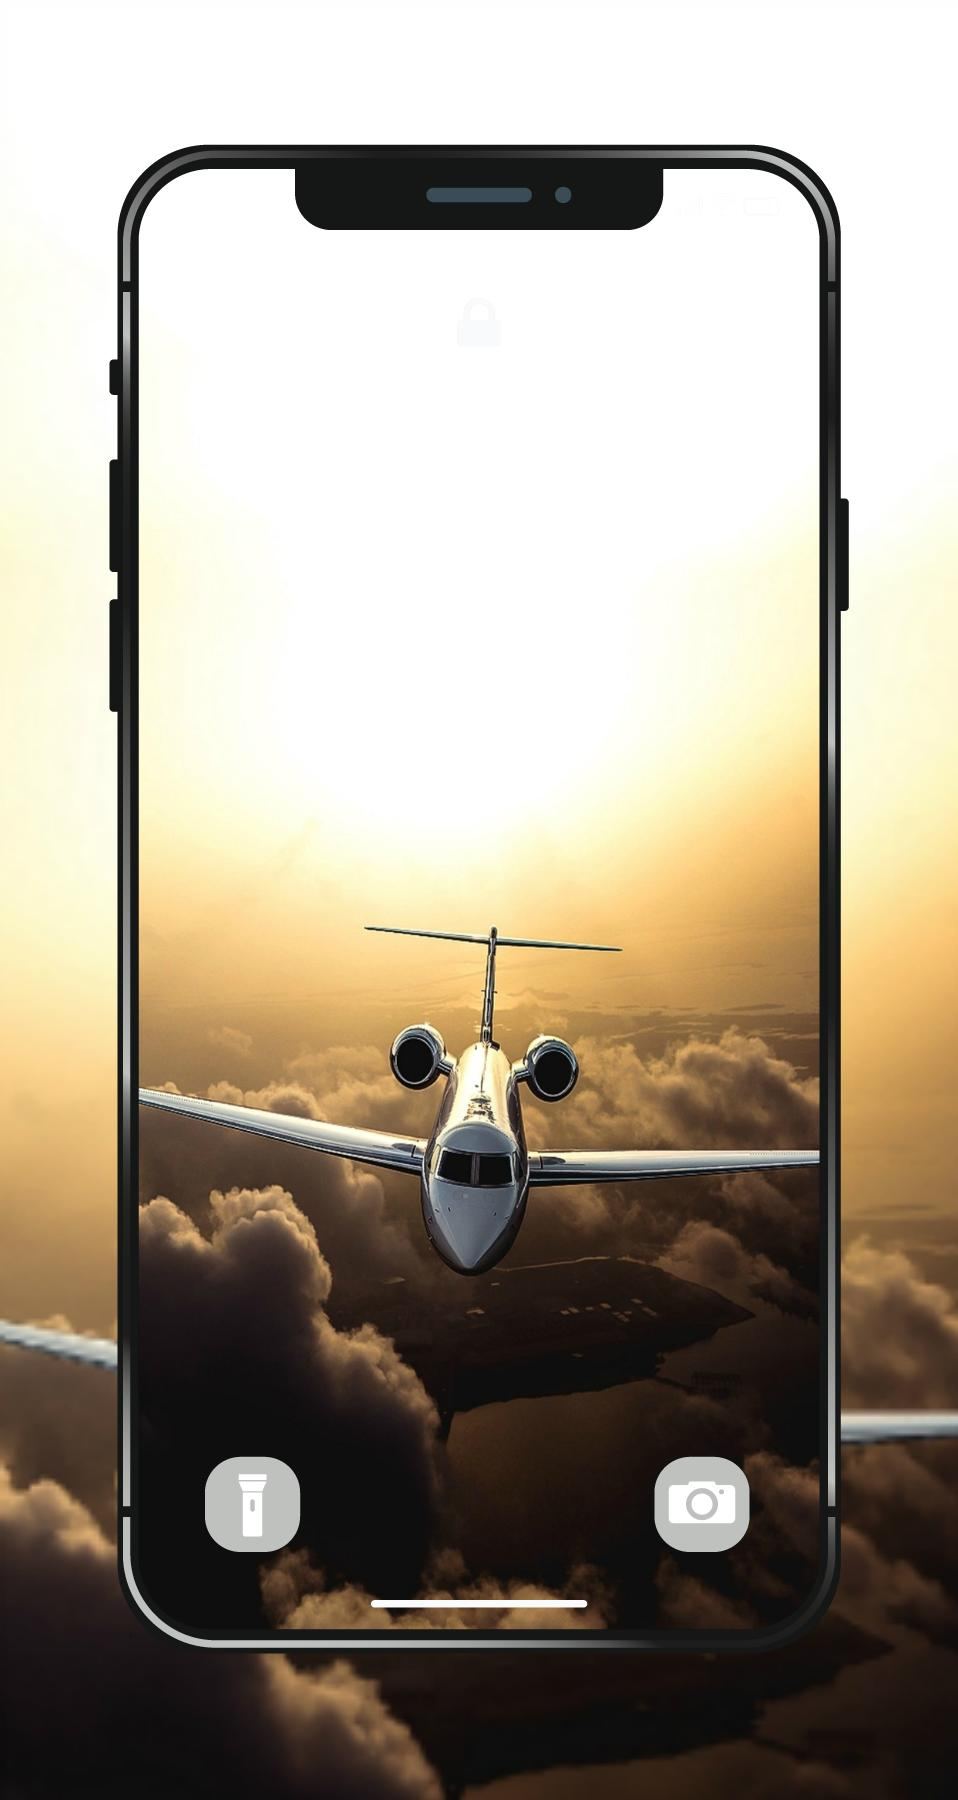 Aircraft Wallpapers 4k Hd Airplane Wallpapers For